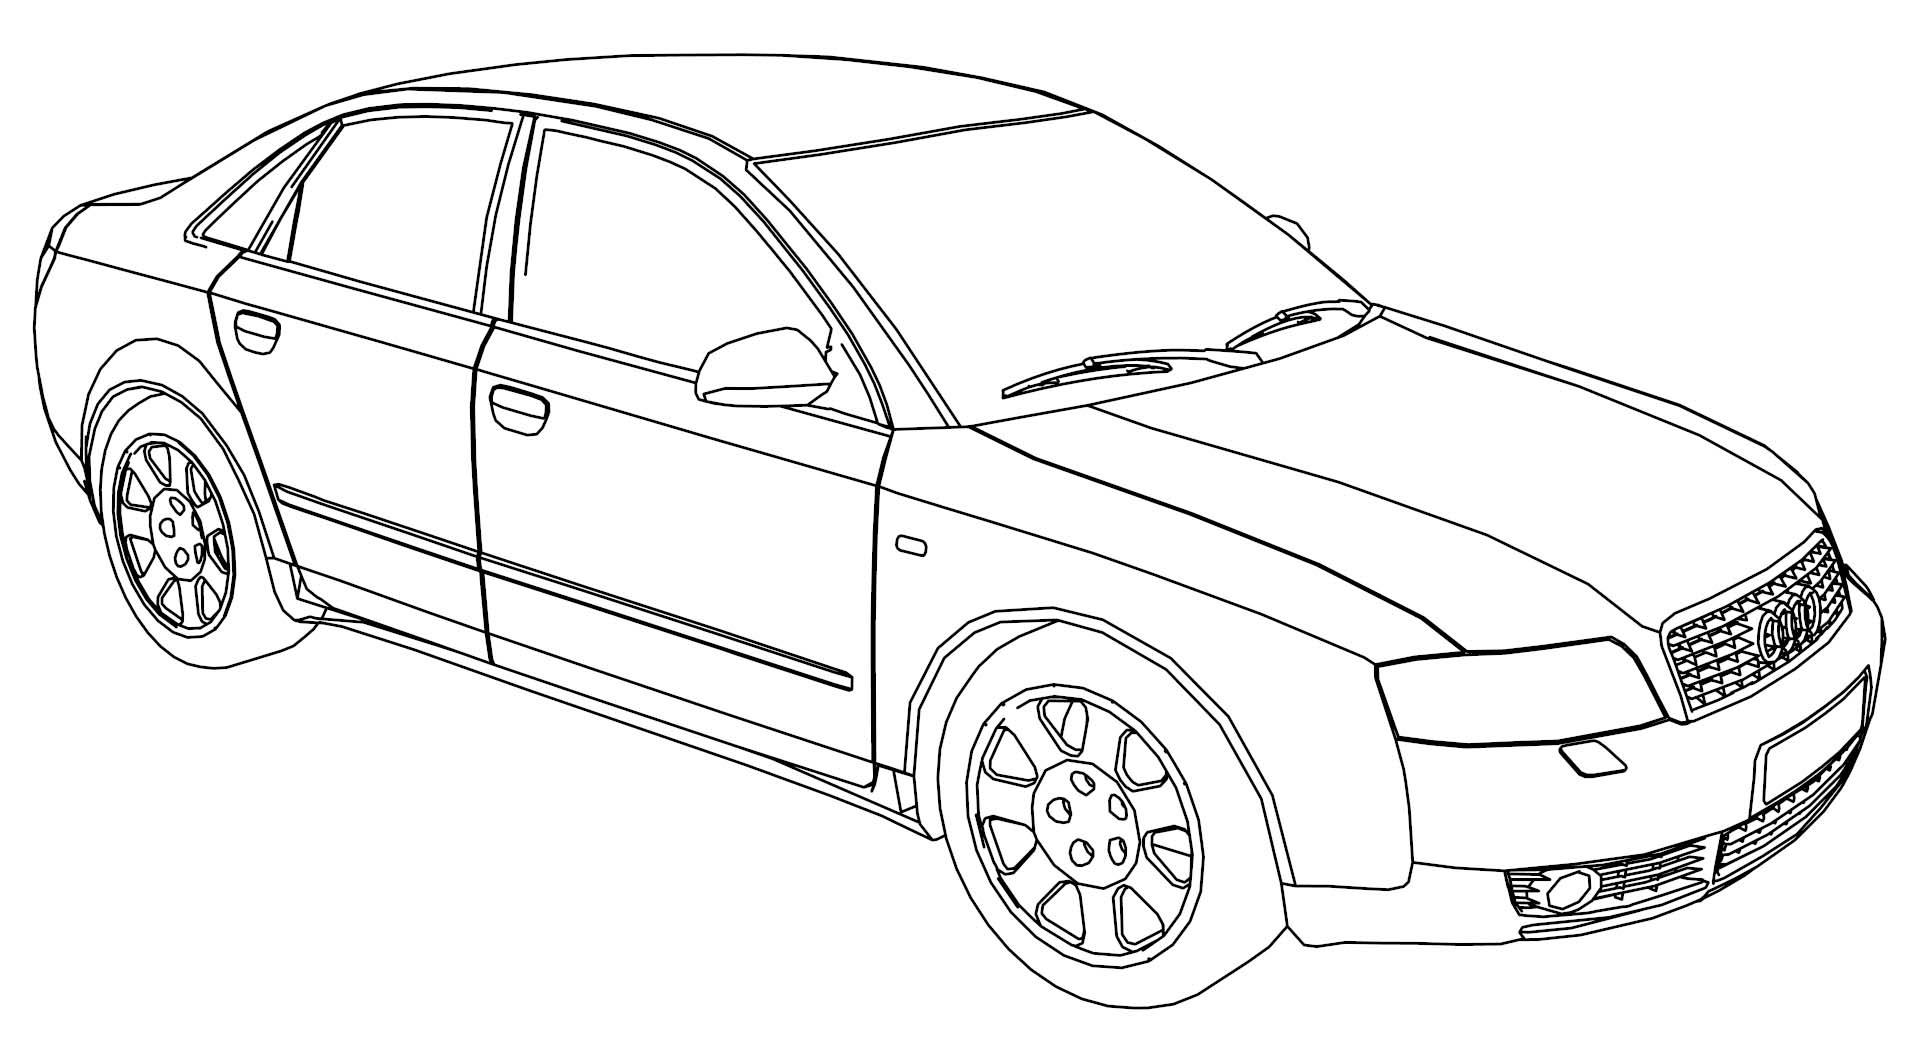 Audi A4 Engine Diagram Sketch Coloring Page